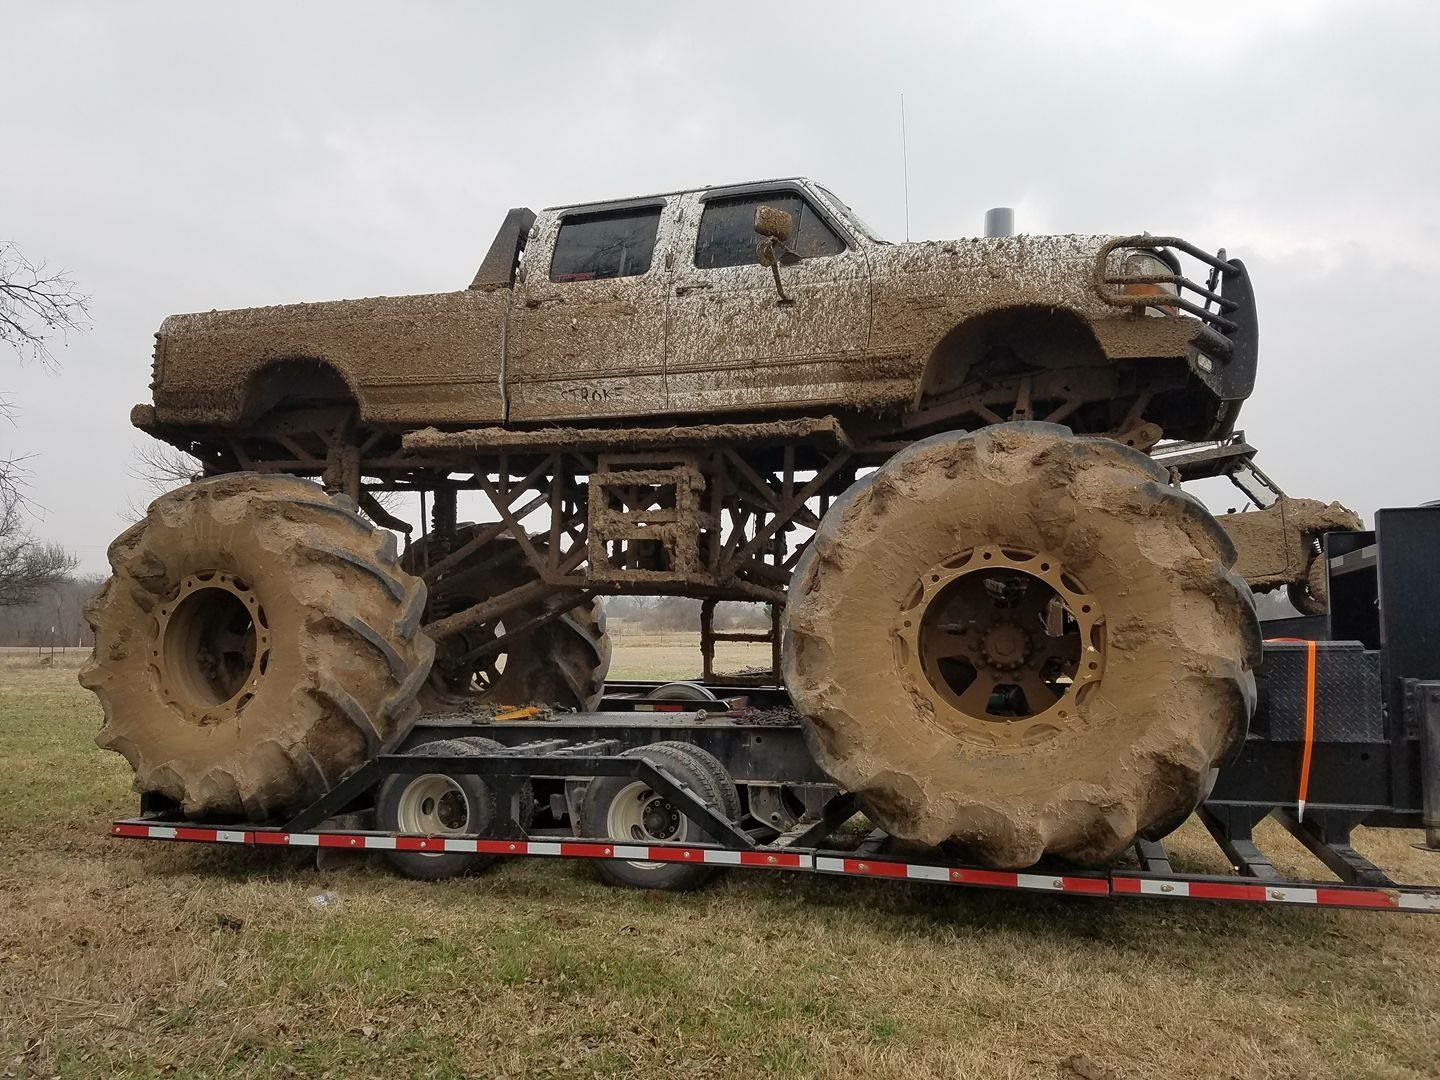 Ford F 350 Mud Monster Truck With Images Big Monster Trucks